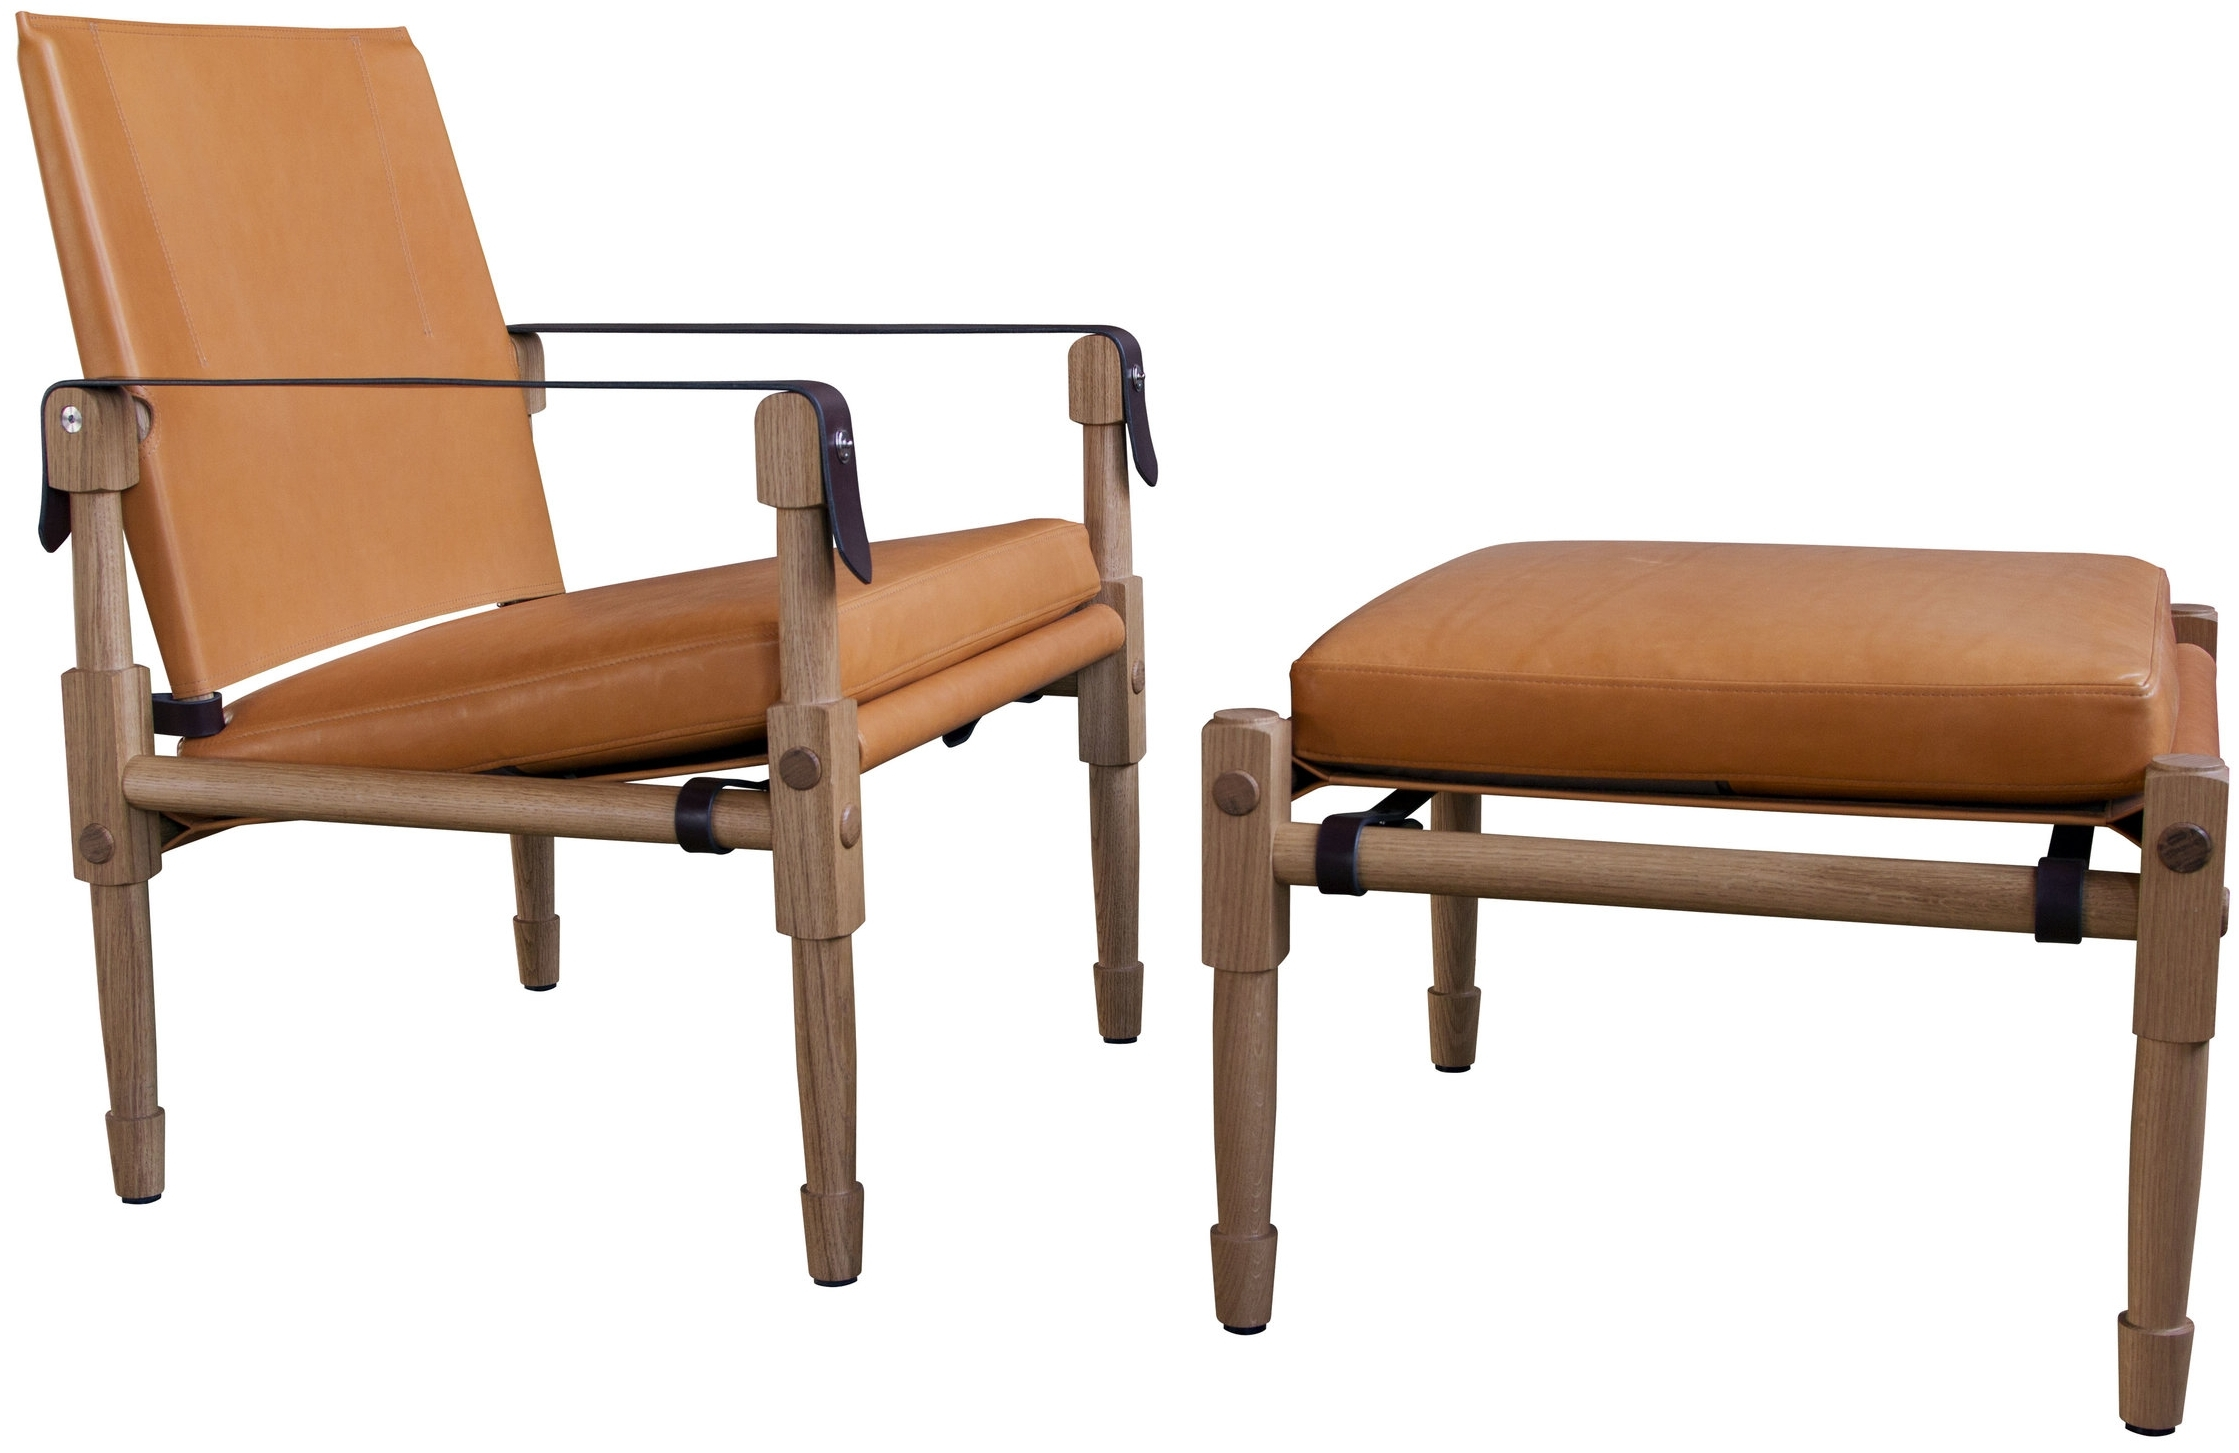 Chatwin Lounge and Ottoman - Grand 1